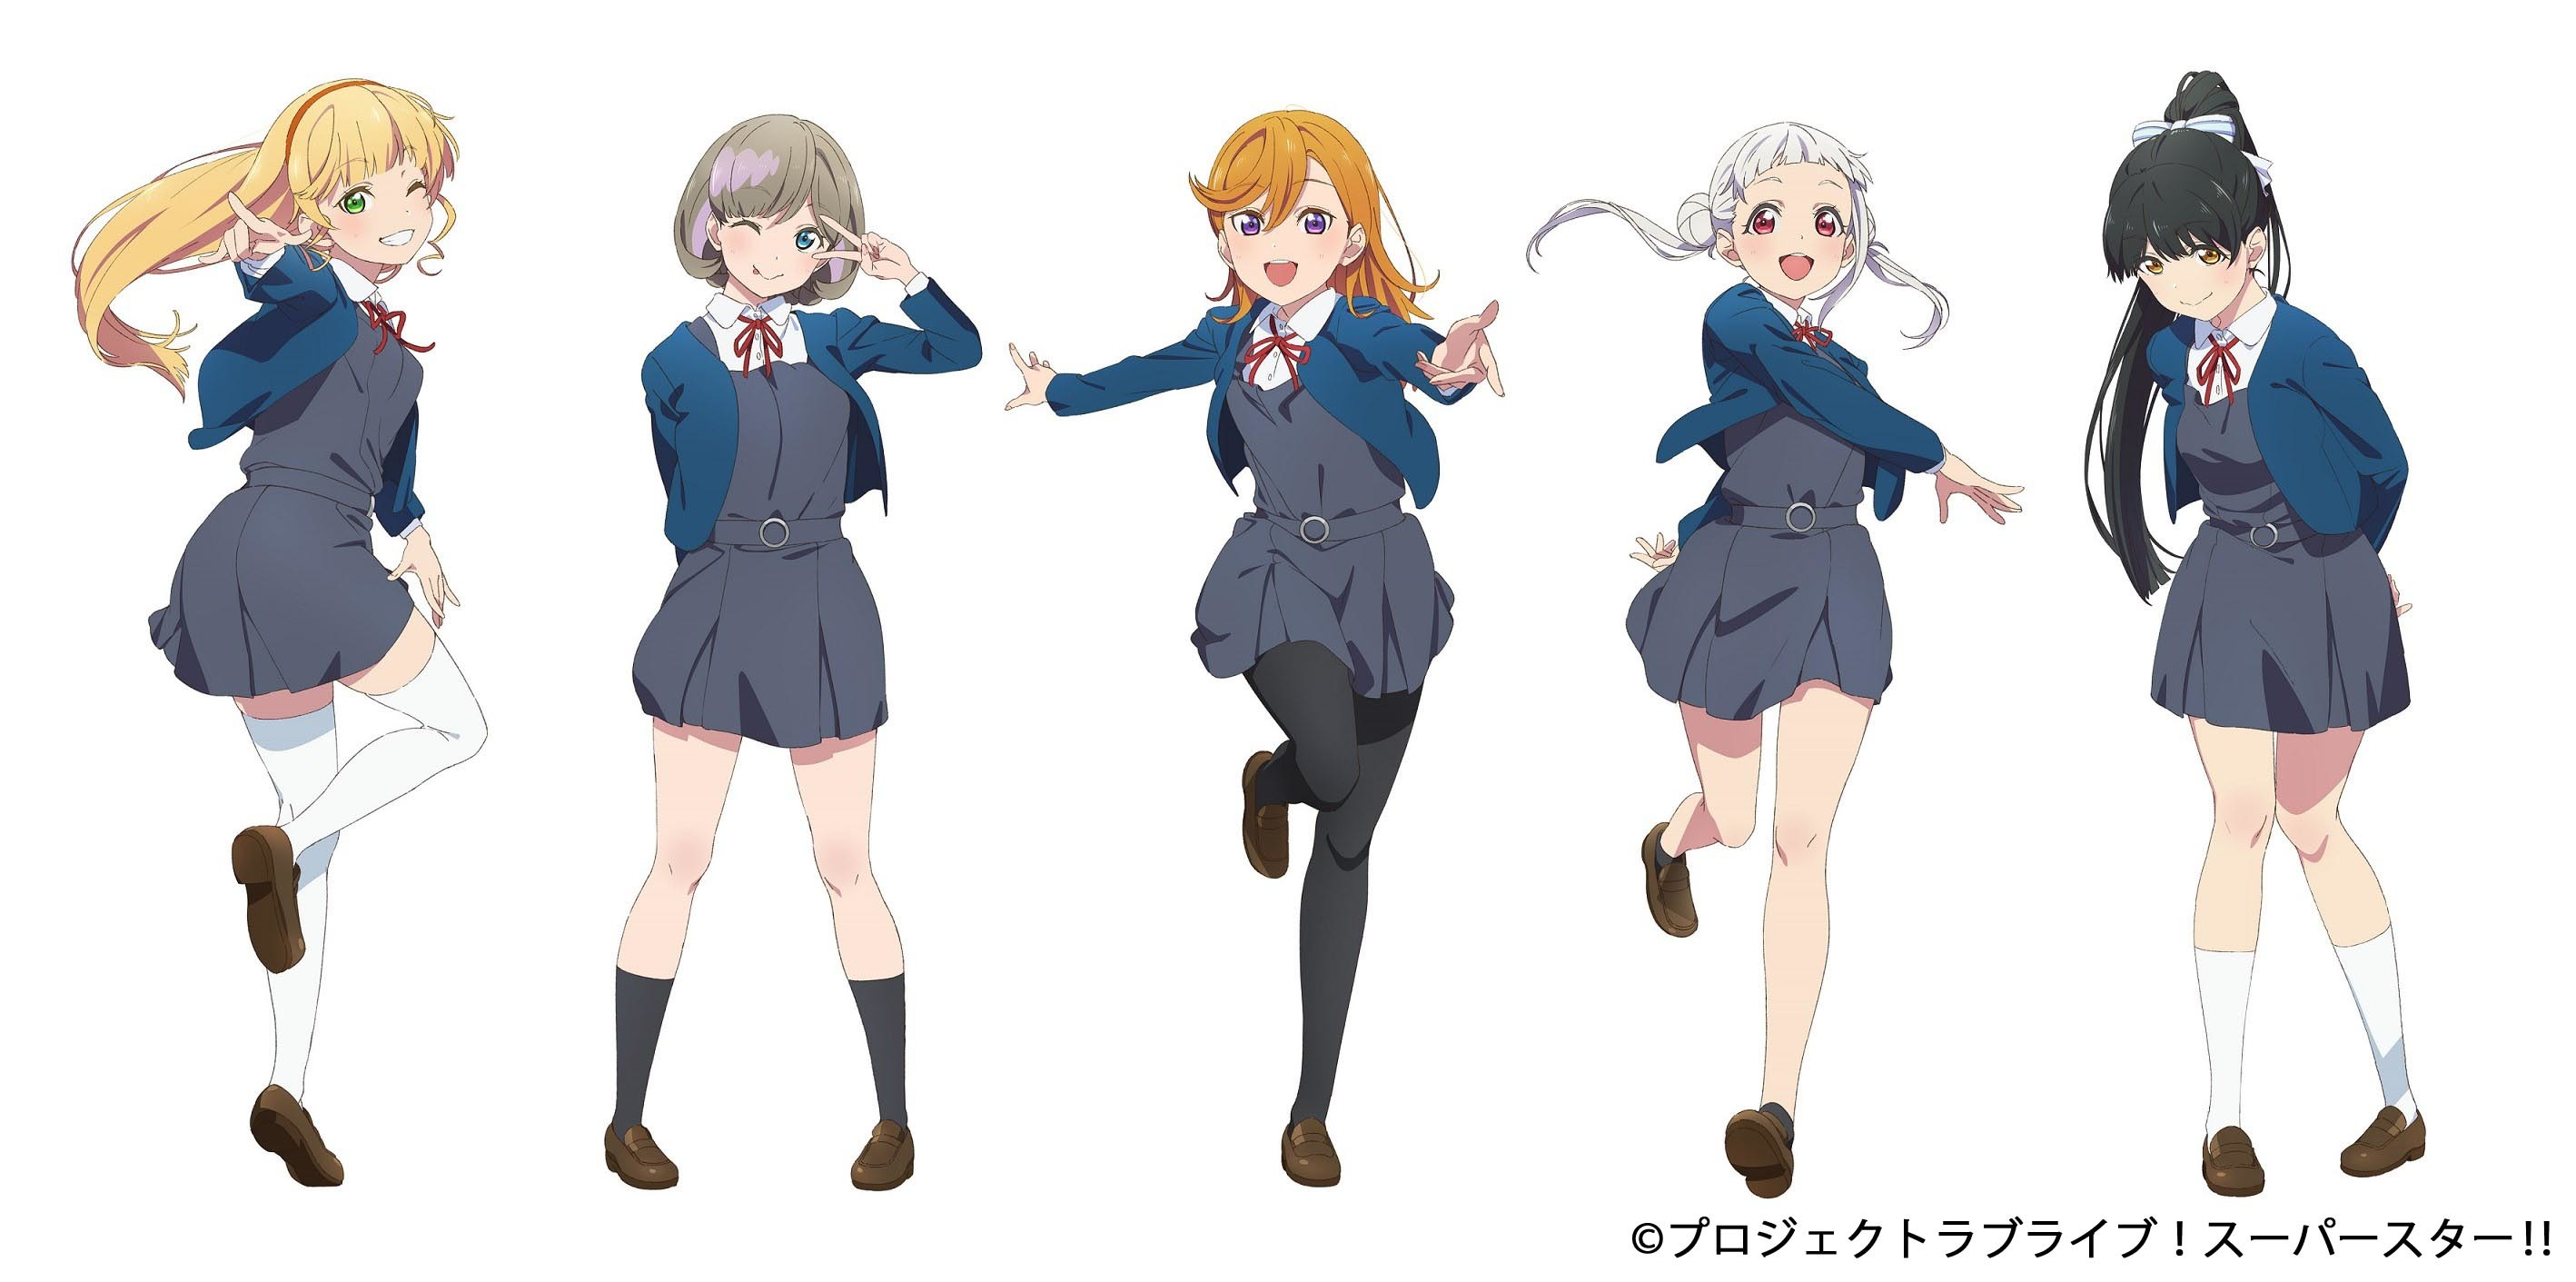 《LoveLive!》系列新作定名《LoveLive! SuperStar!!》少女们的故事即将展开